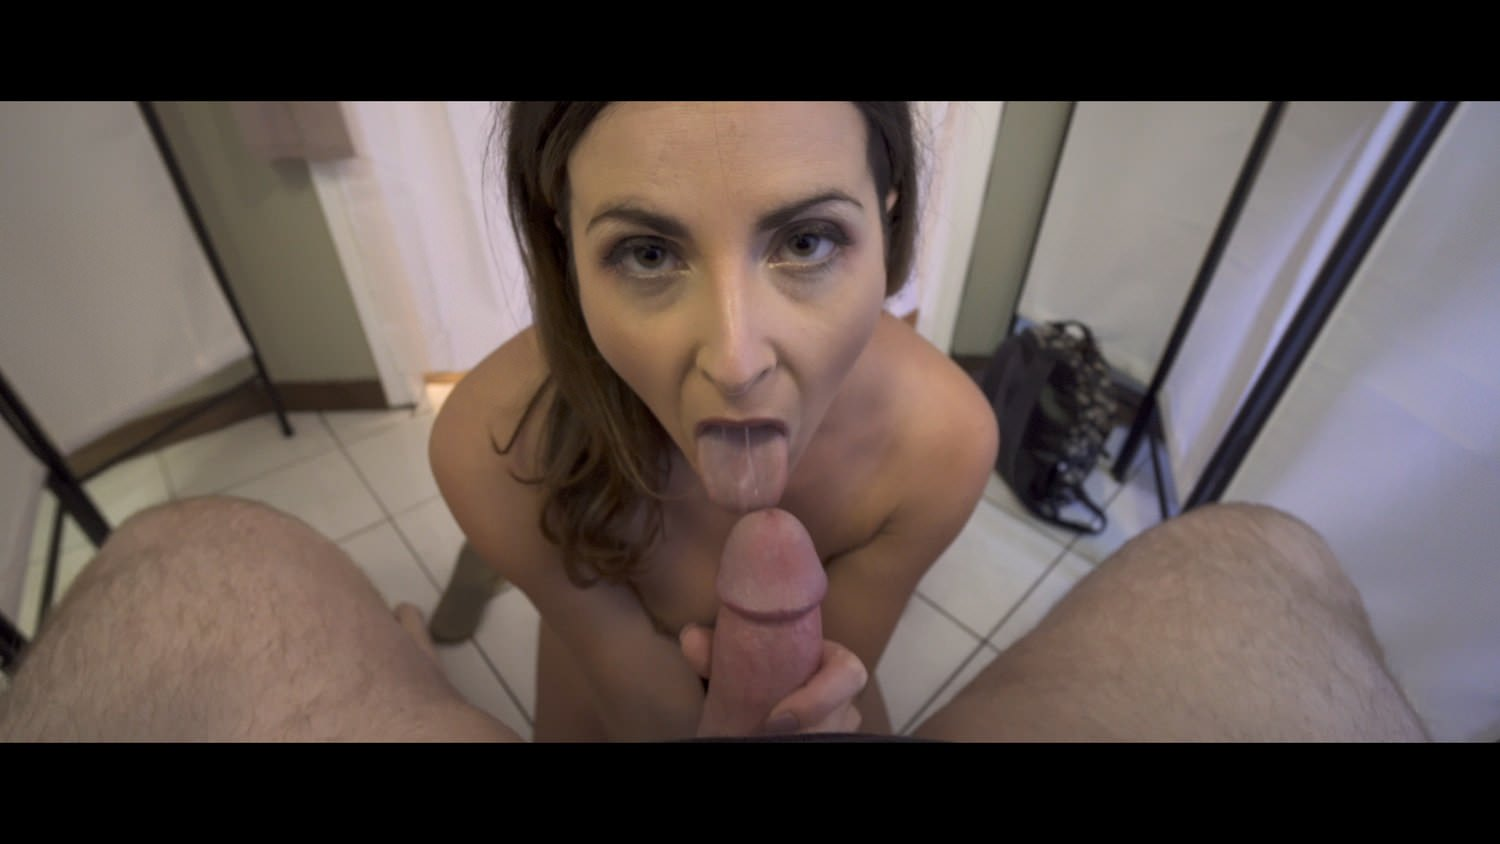 Michigan cutie in pigtails takes condom off - 1 part 9